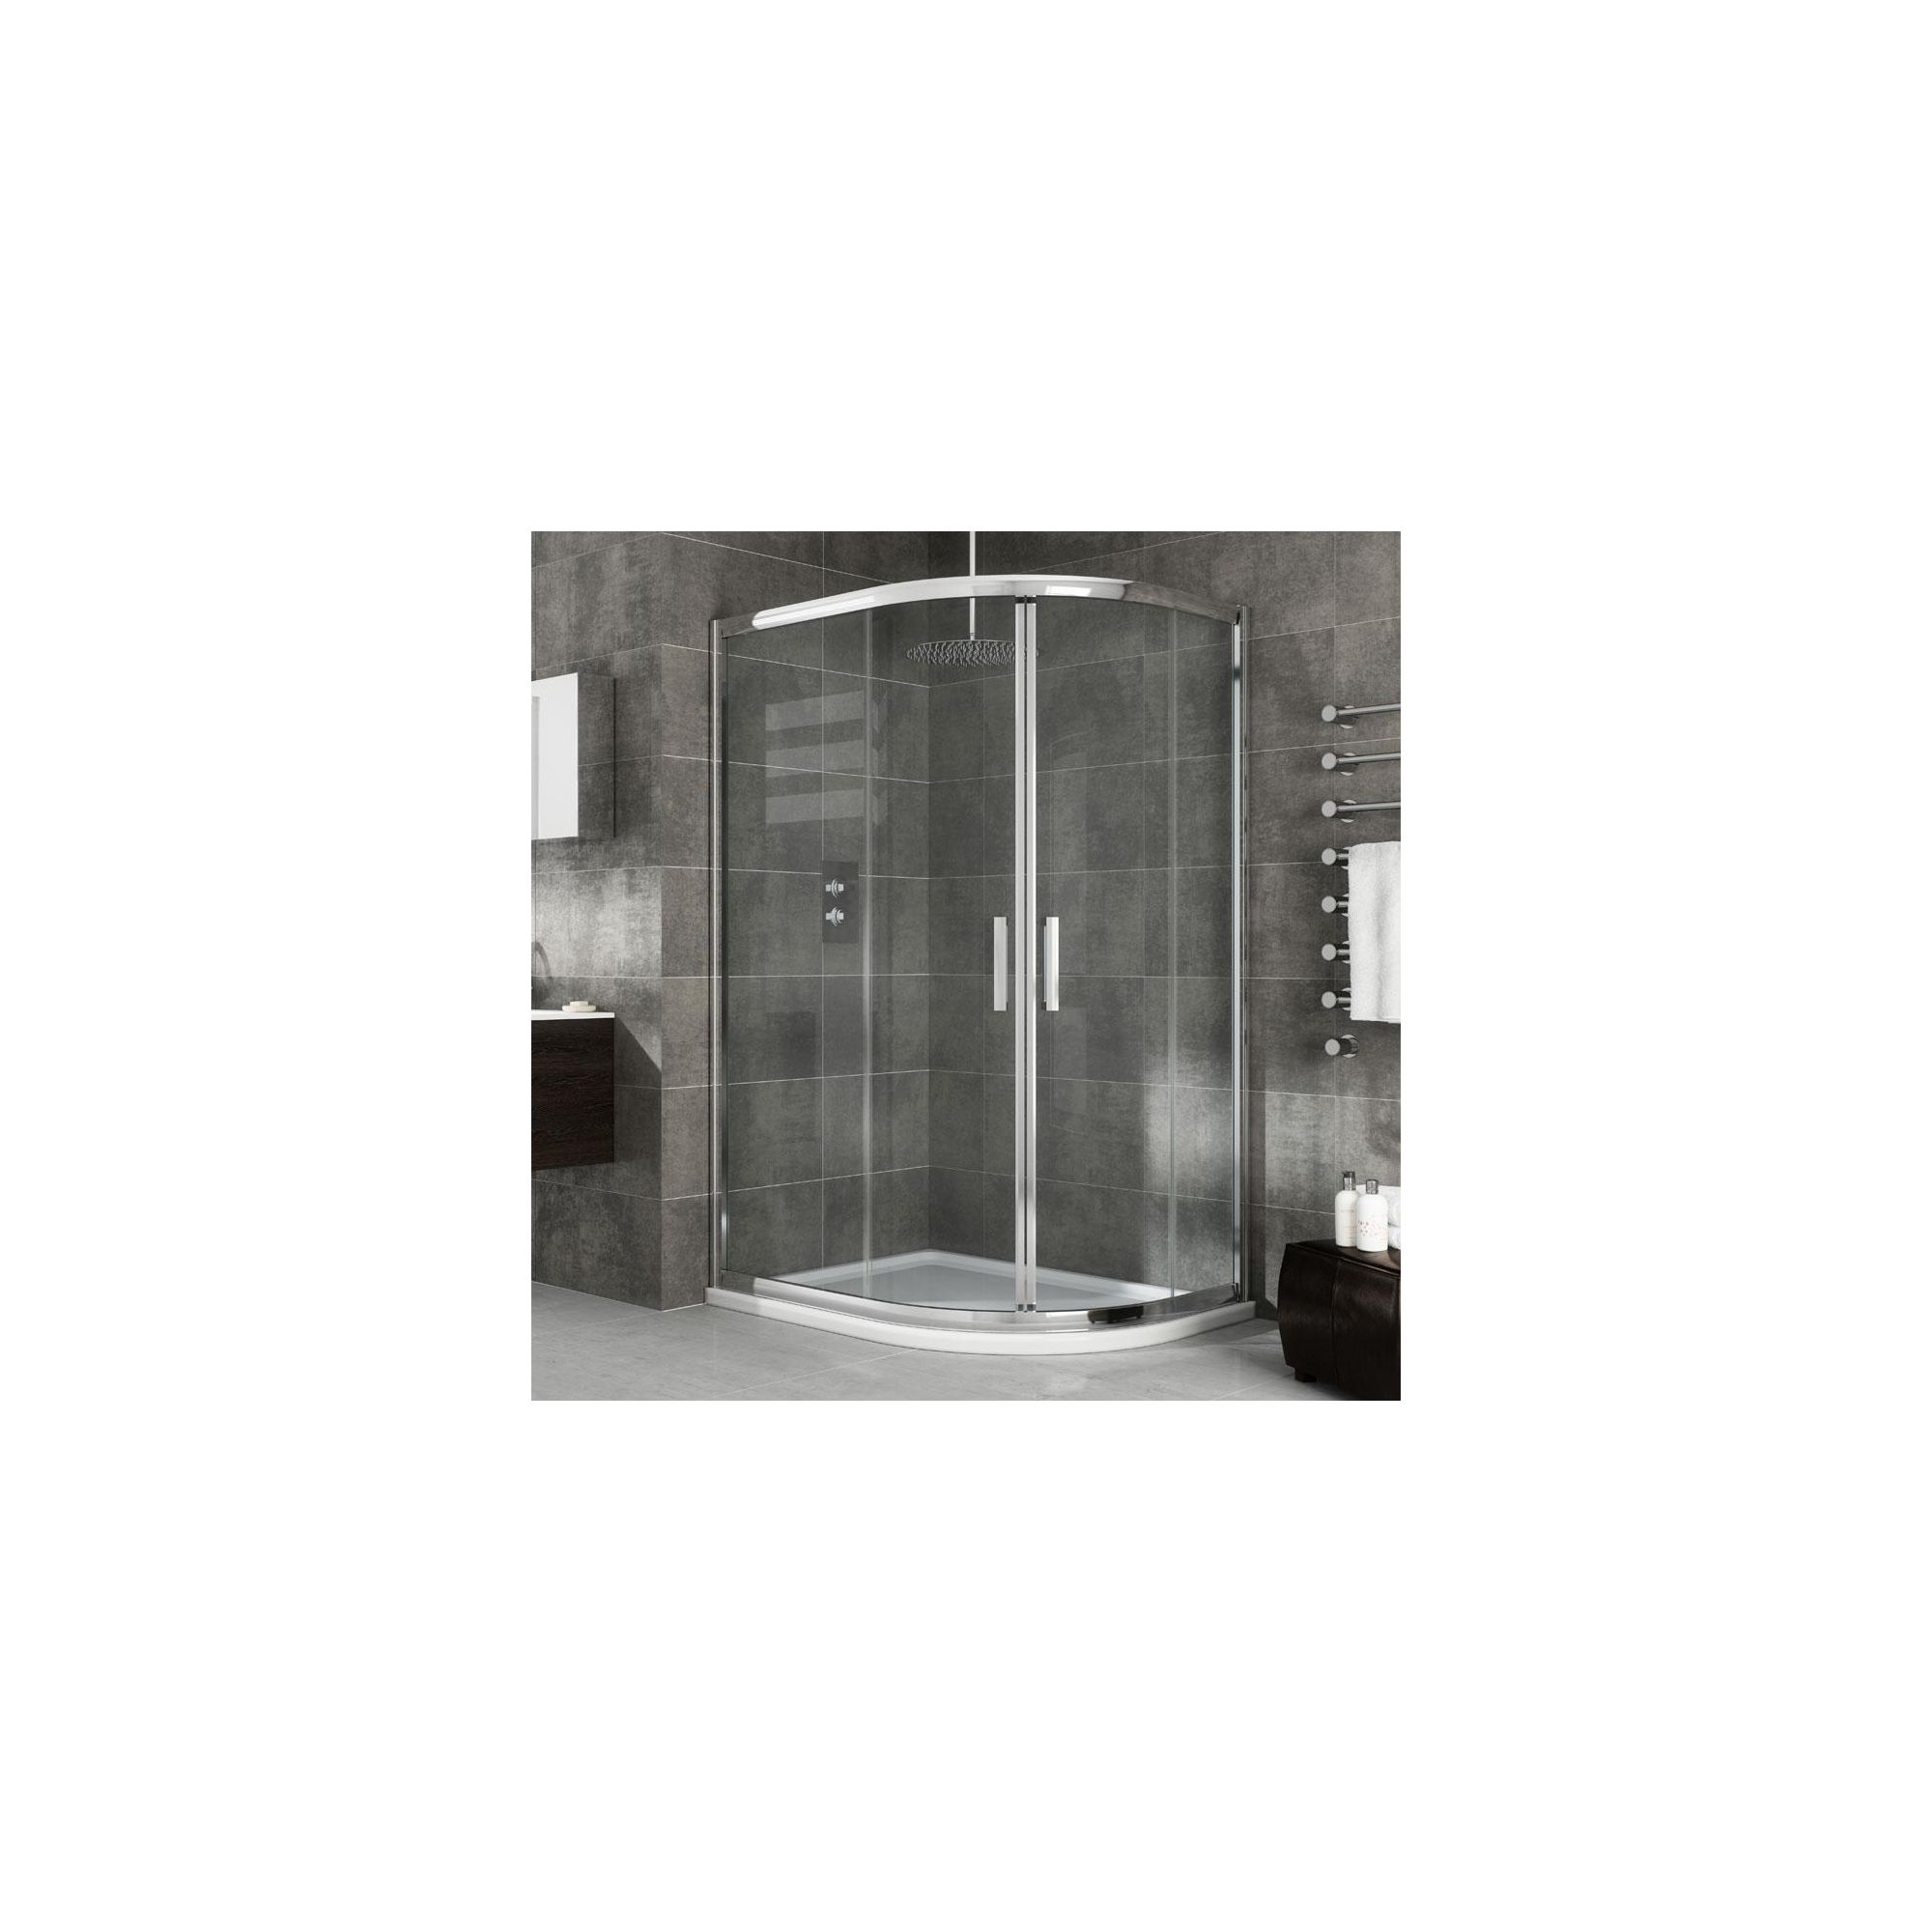 Elemis Eternity Two-Door Offset Quadrant Shower Door, 1000mm x 800mm, 8mm Glass at Tesco Direct